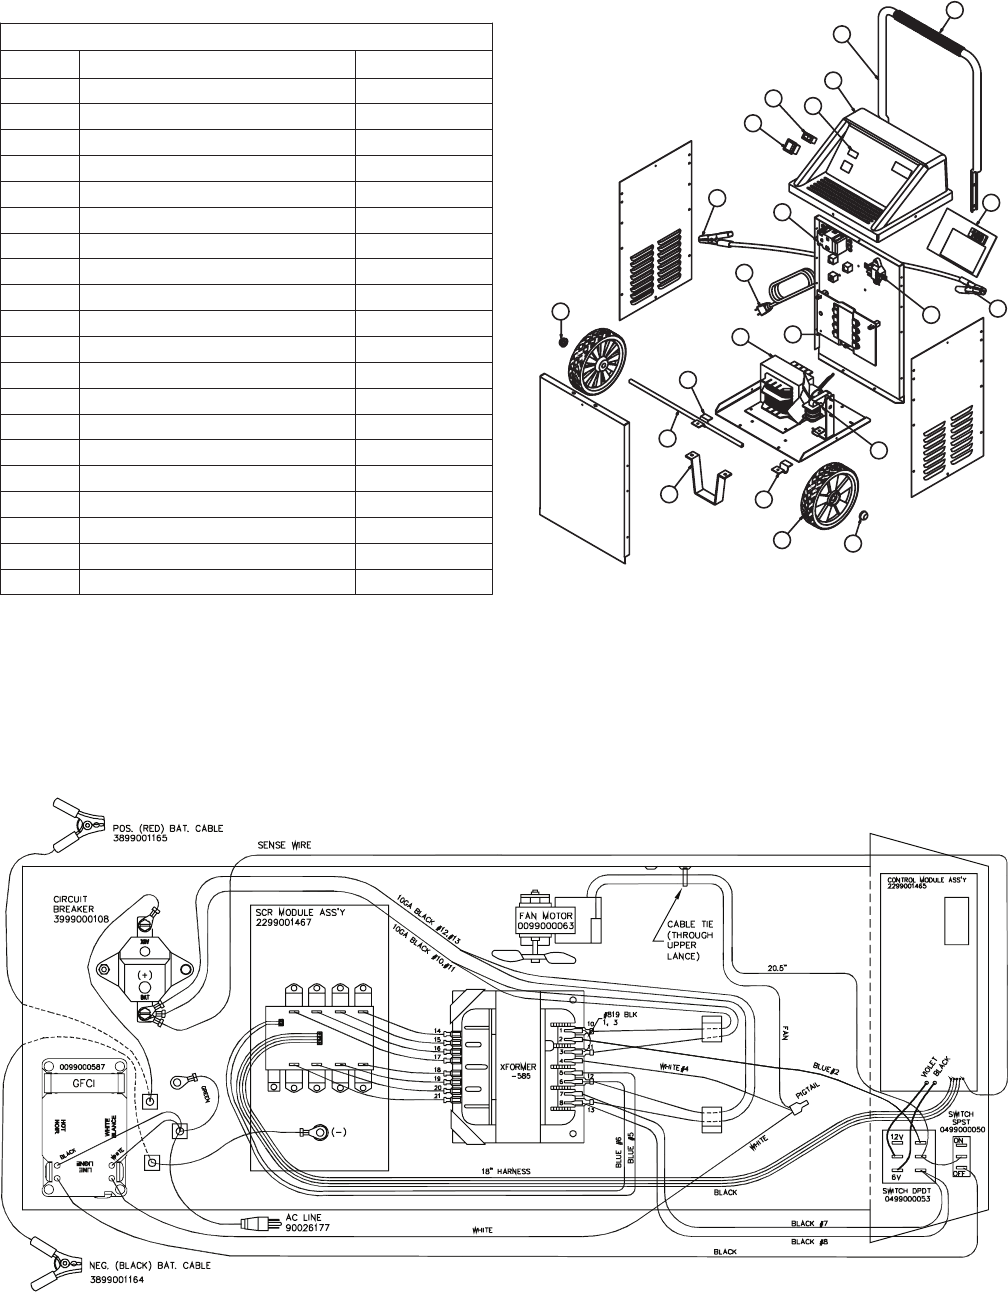 wiring diagram sears battery charger wiring image craftsman battery charger wiring diagram craftsman